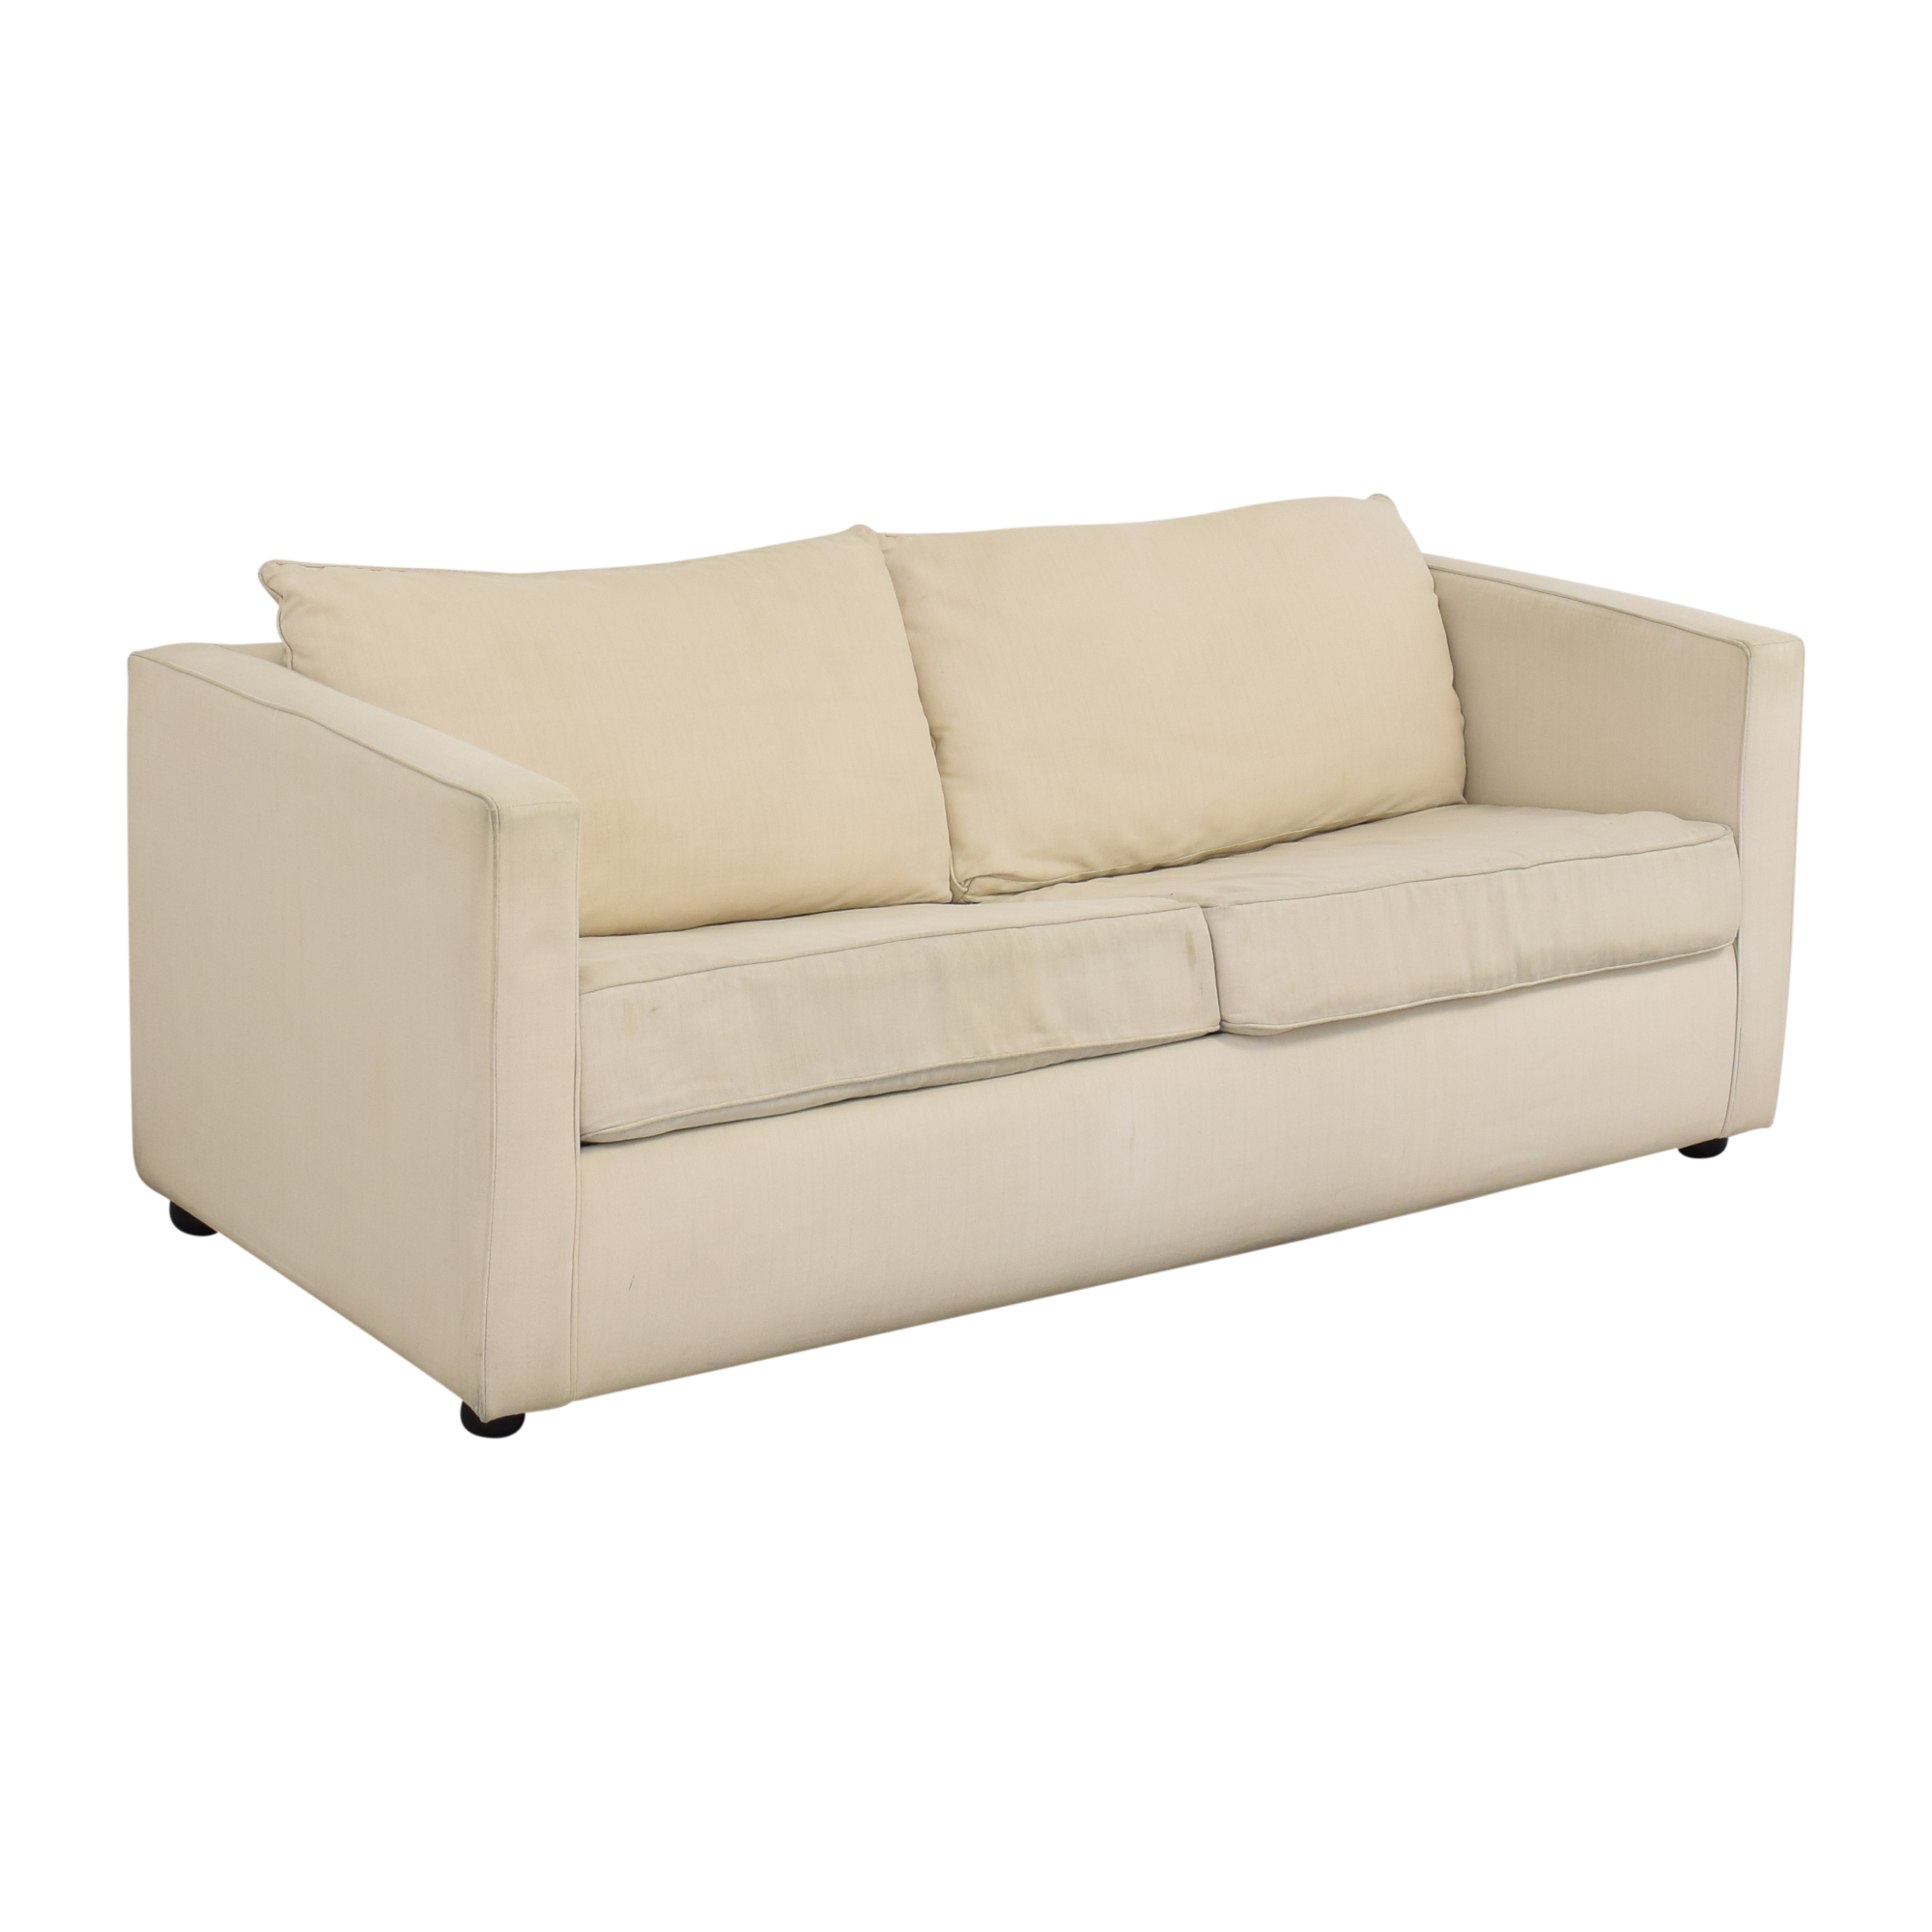 KFI Single Cushion Sofa Bed ct